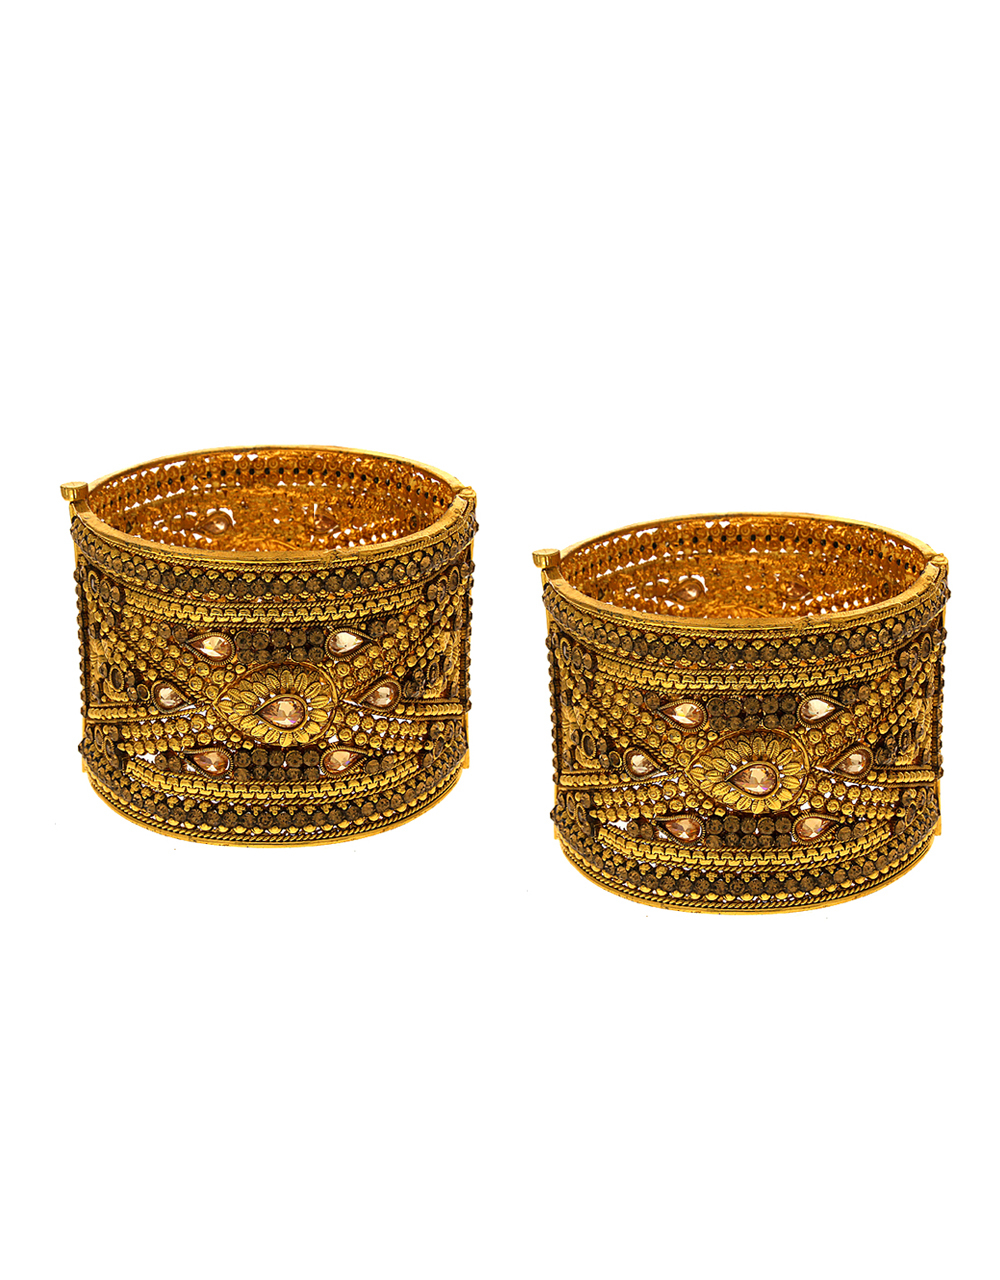 Fancy Gold Finish Bangles Studded With Stones Traditional Bangles